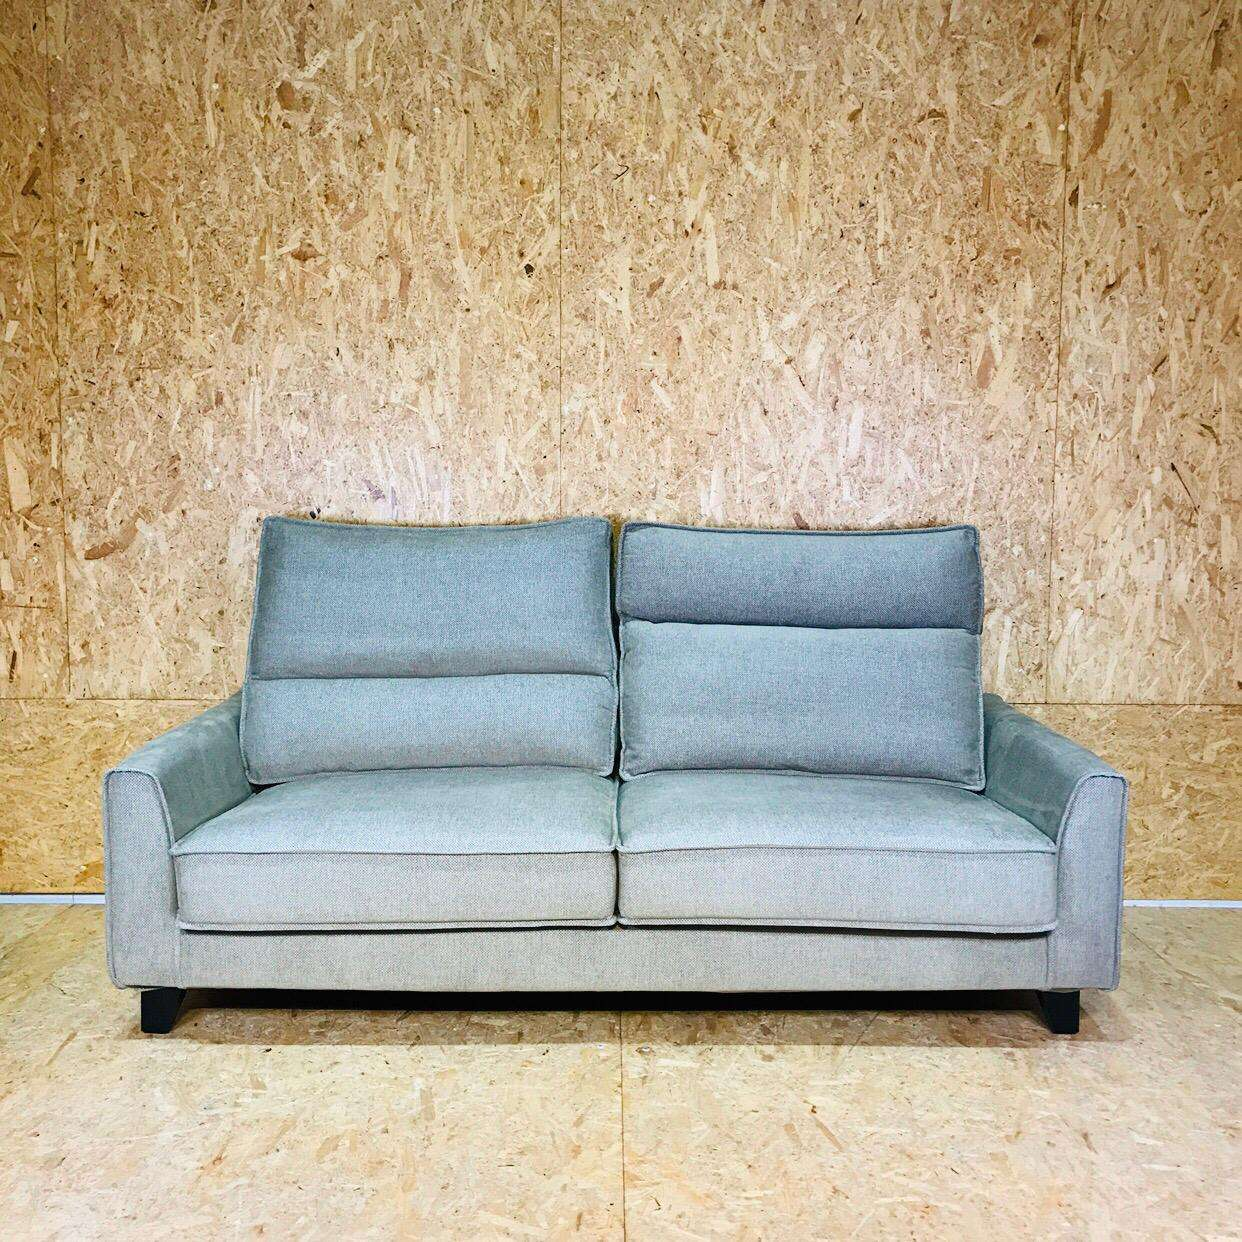 Moderne Speciale Invertible Rugleuning Woonkamer Meubels Sofa Set In Europese Stijl